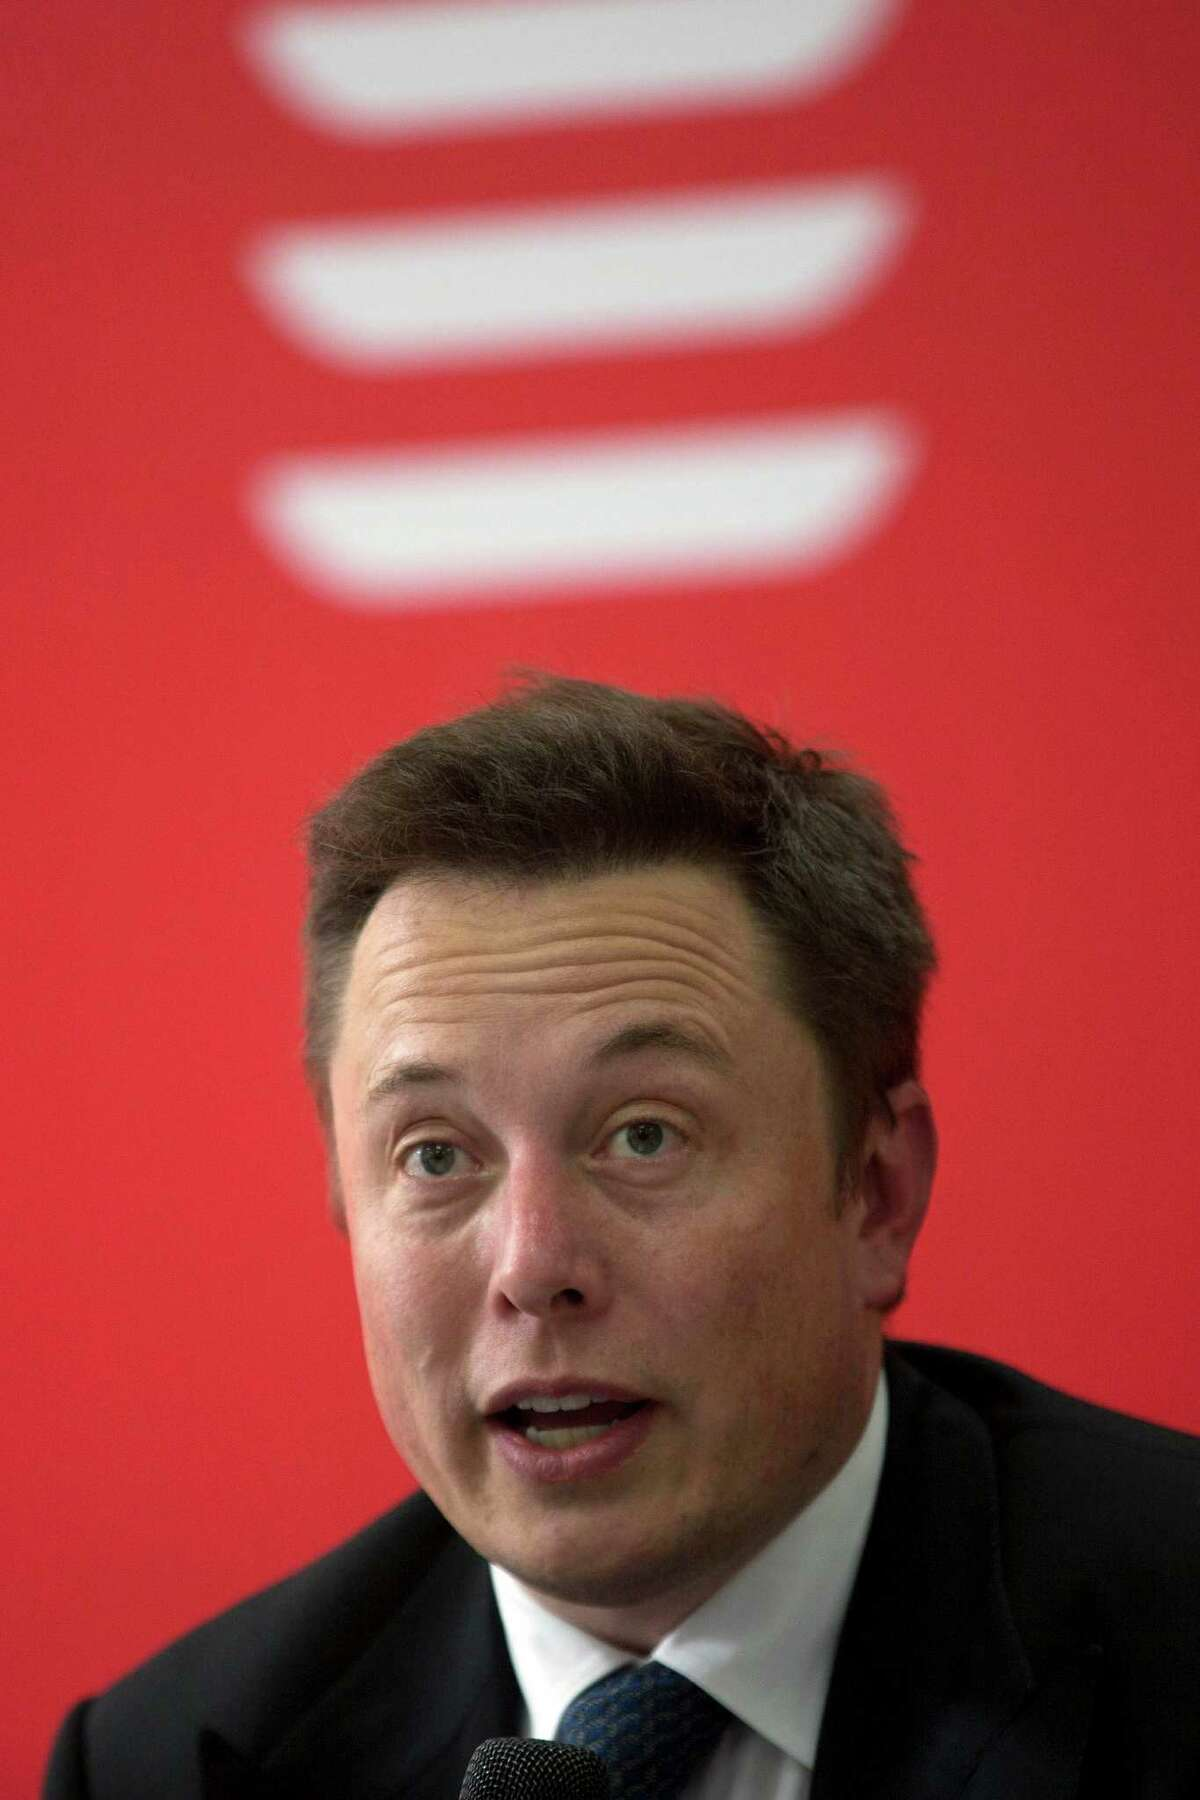 Elon Musk, who oversees Tesla Motors, SpaceX and SolarCity, delivered Tesla's first six electric sedans last month in Beijing.